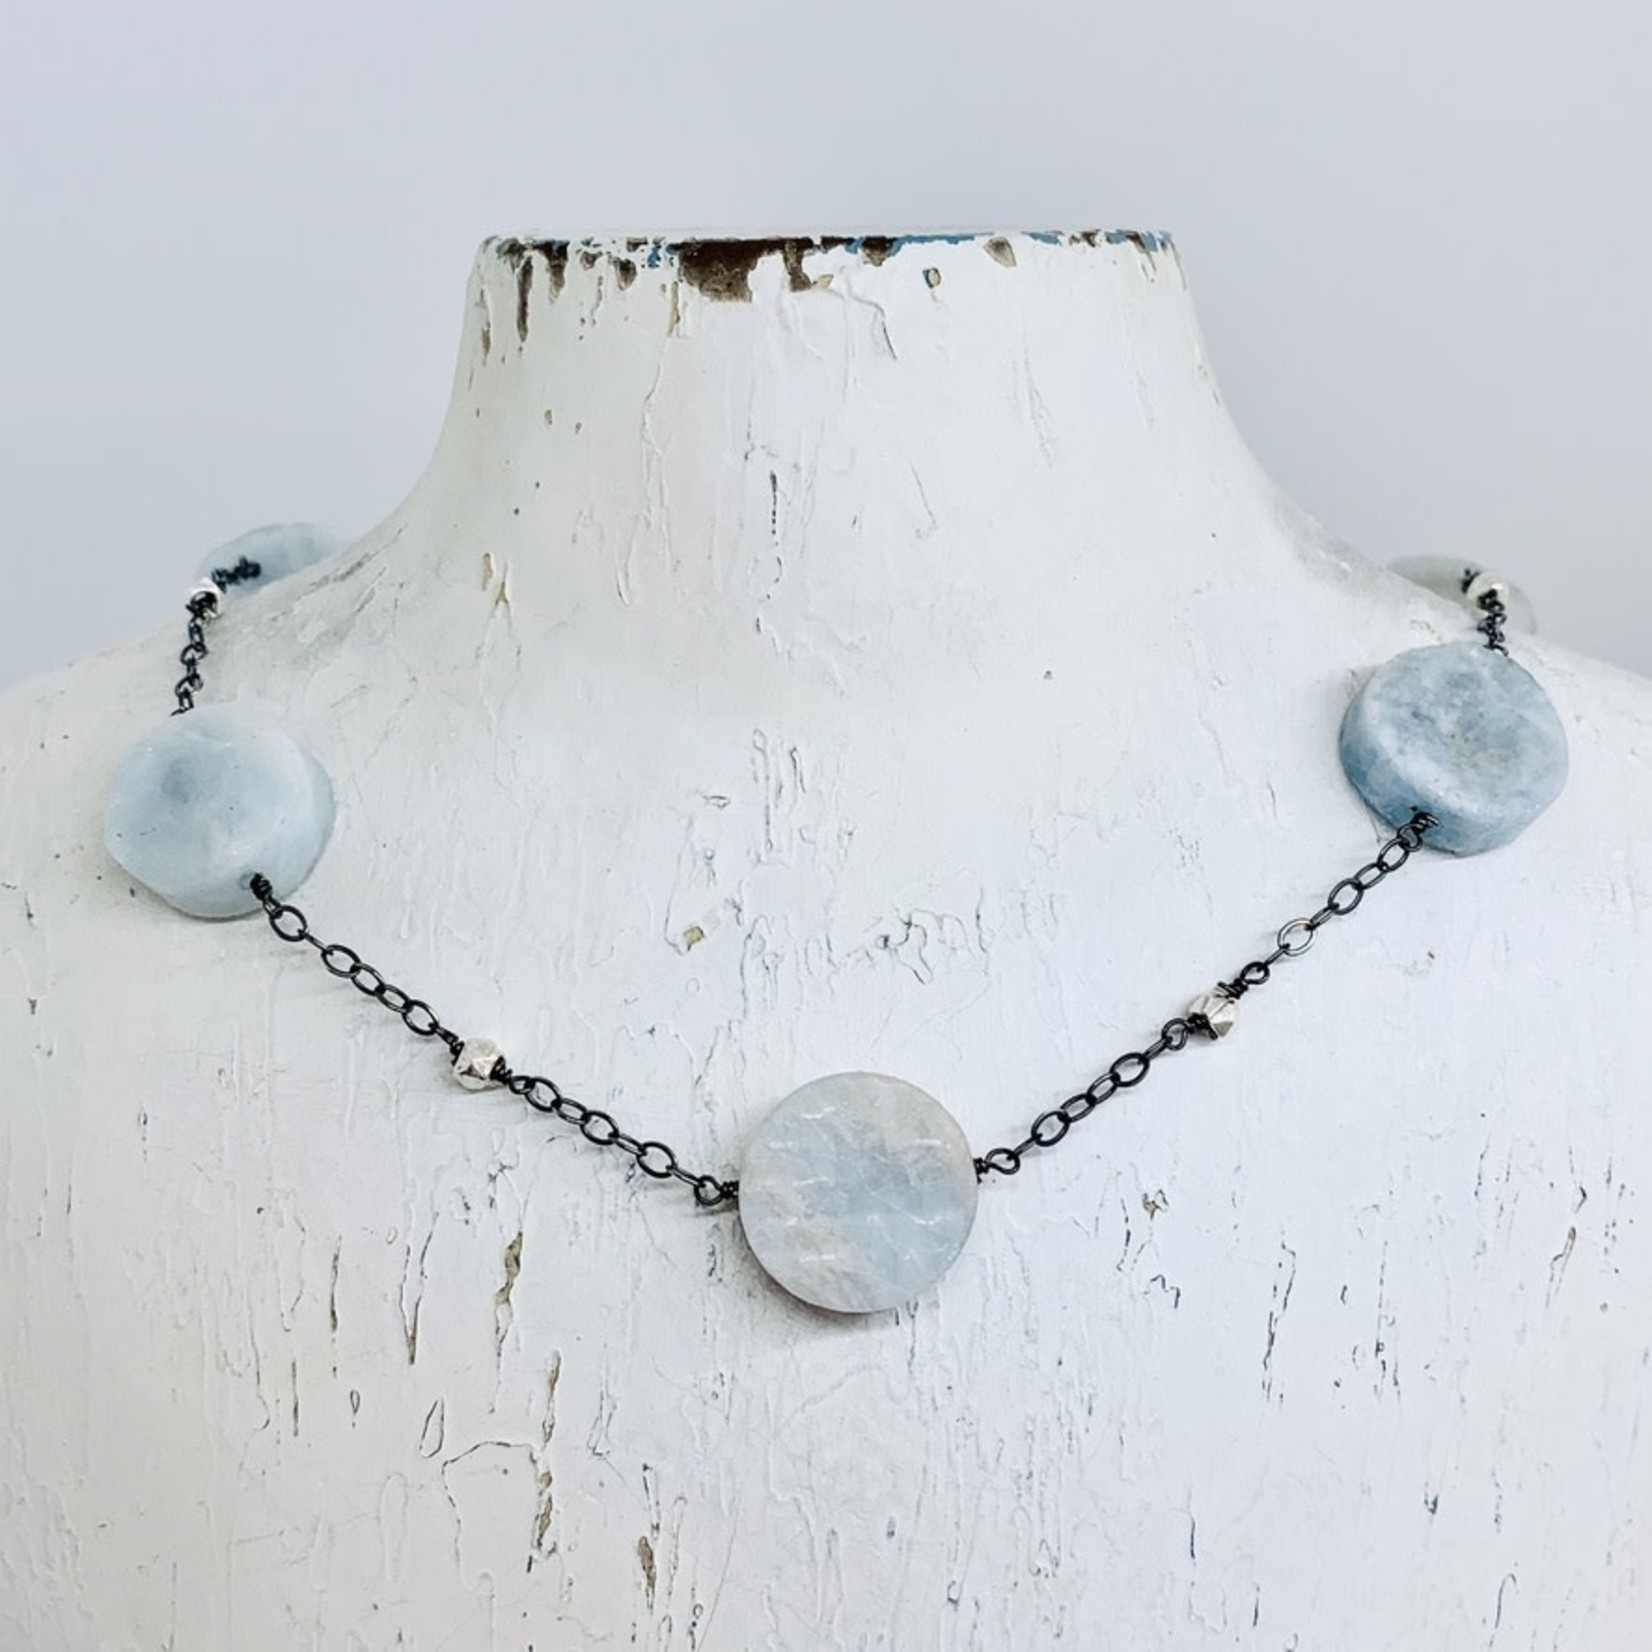 Handmade necklace with oxidized chain, 5 aquamarine coins, shiny faceted silver